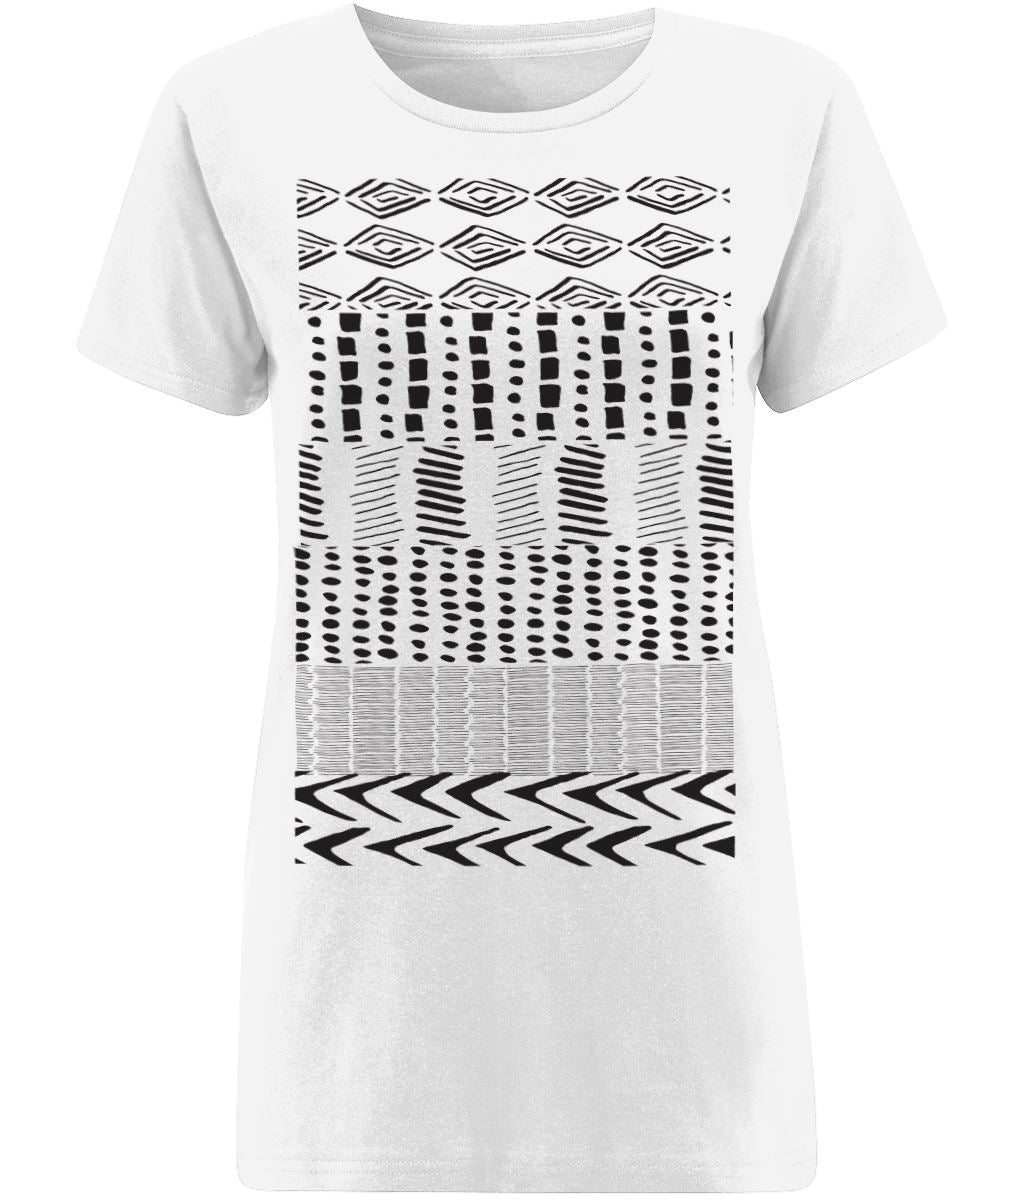 Ethnic Pattern I T-shirt Clothing IndianBelieves X-Small White